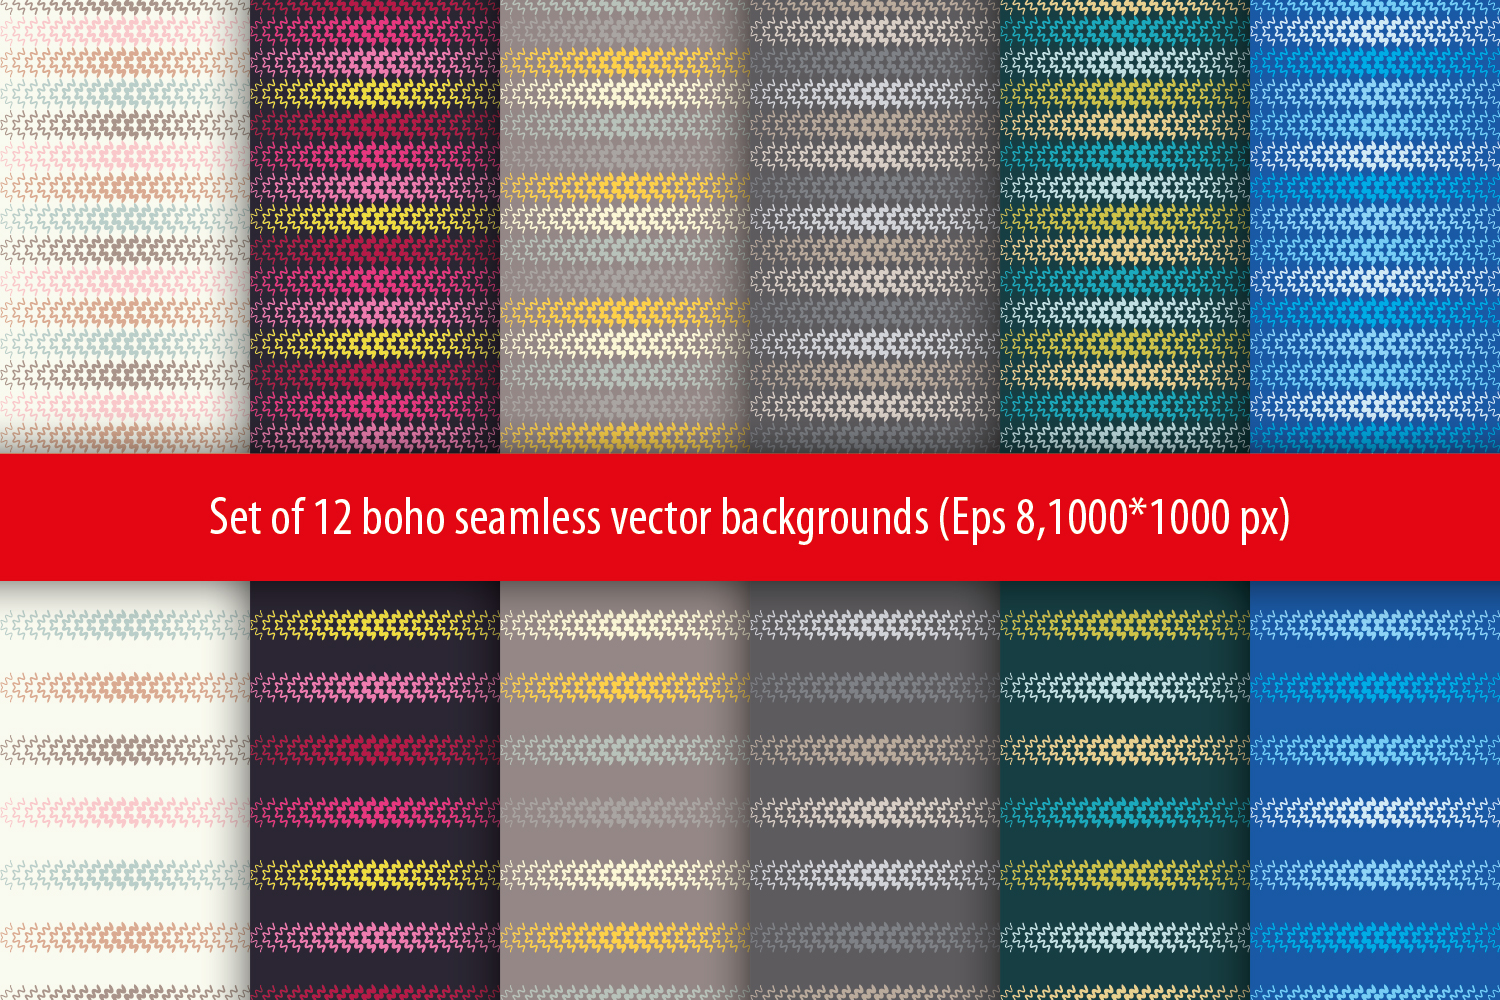 Set of 12 boho seamless vector backgrounds. example image 1